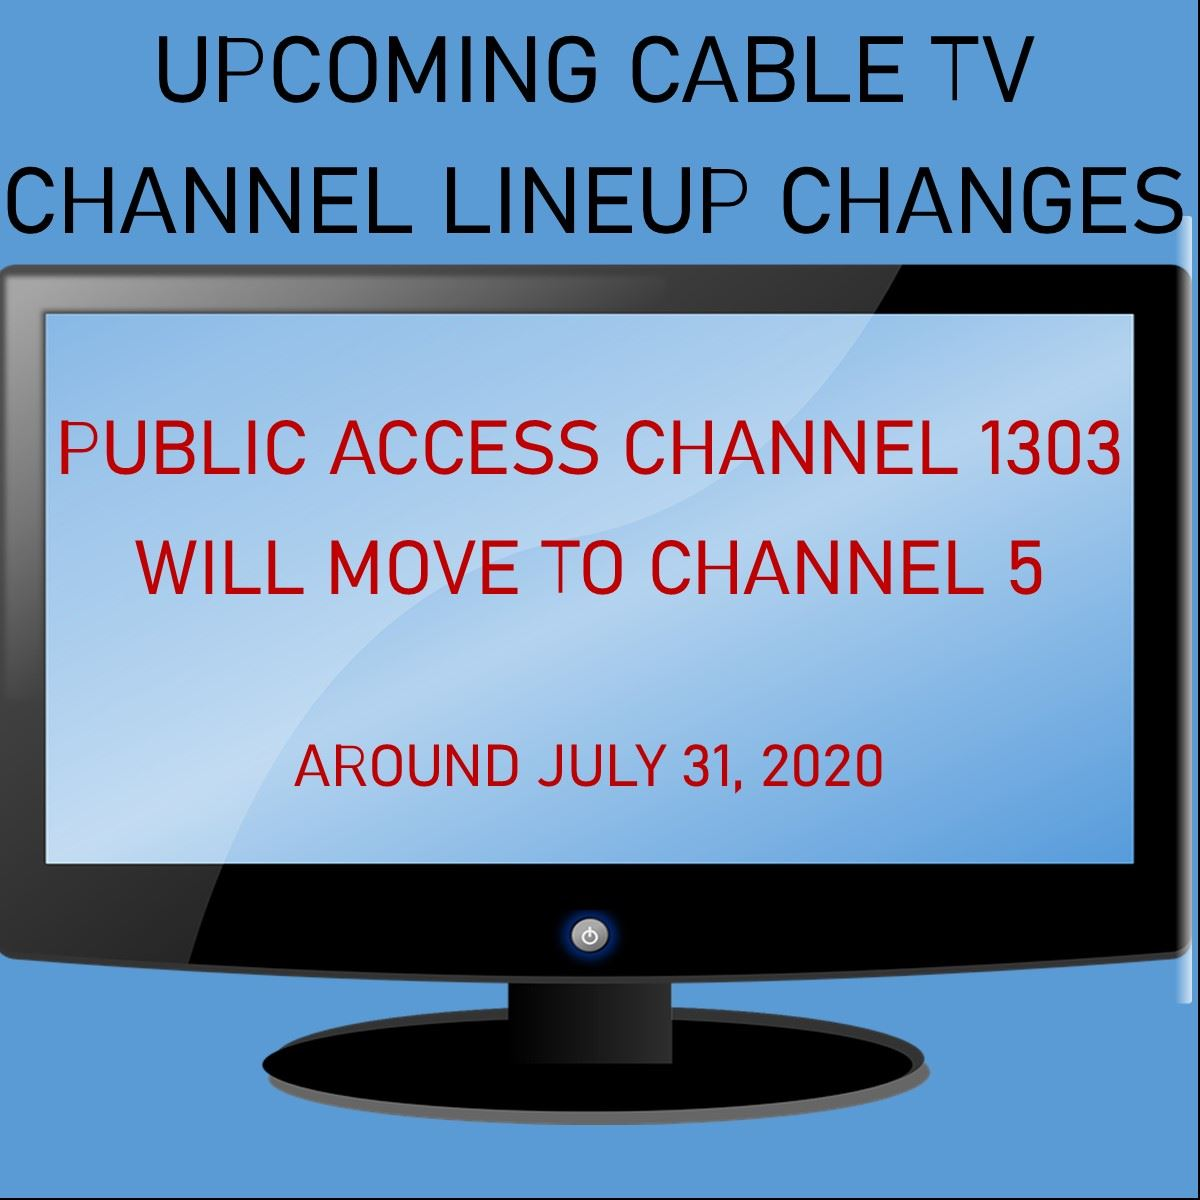 CABLE TV CHANGE